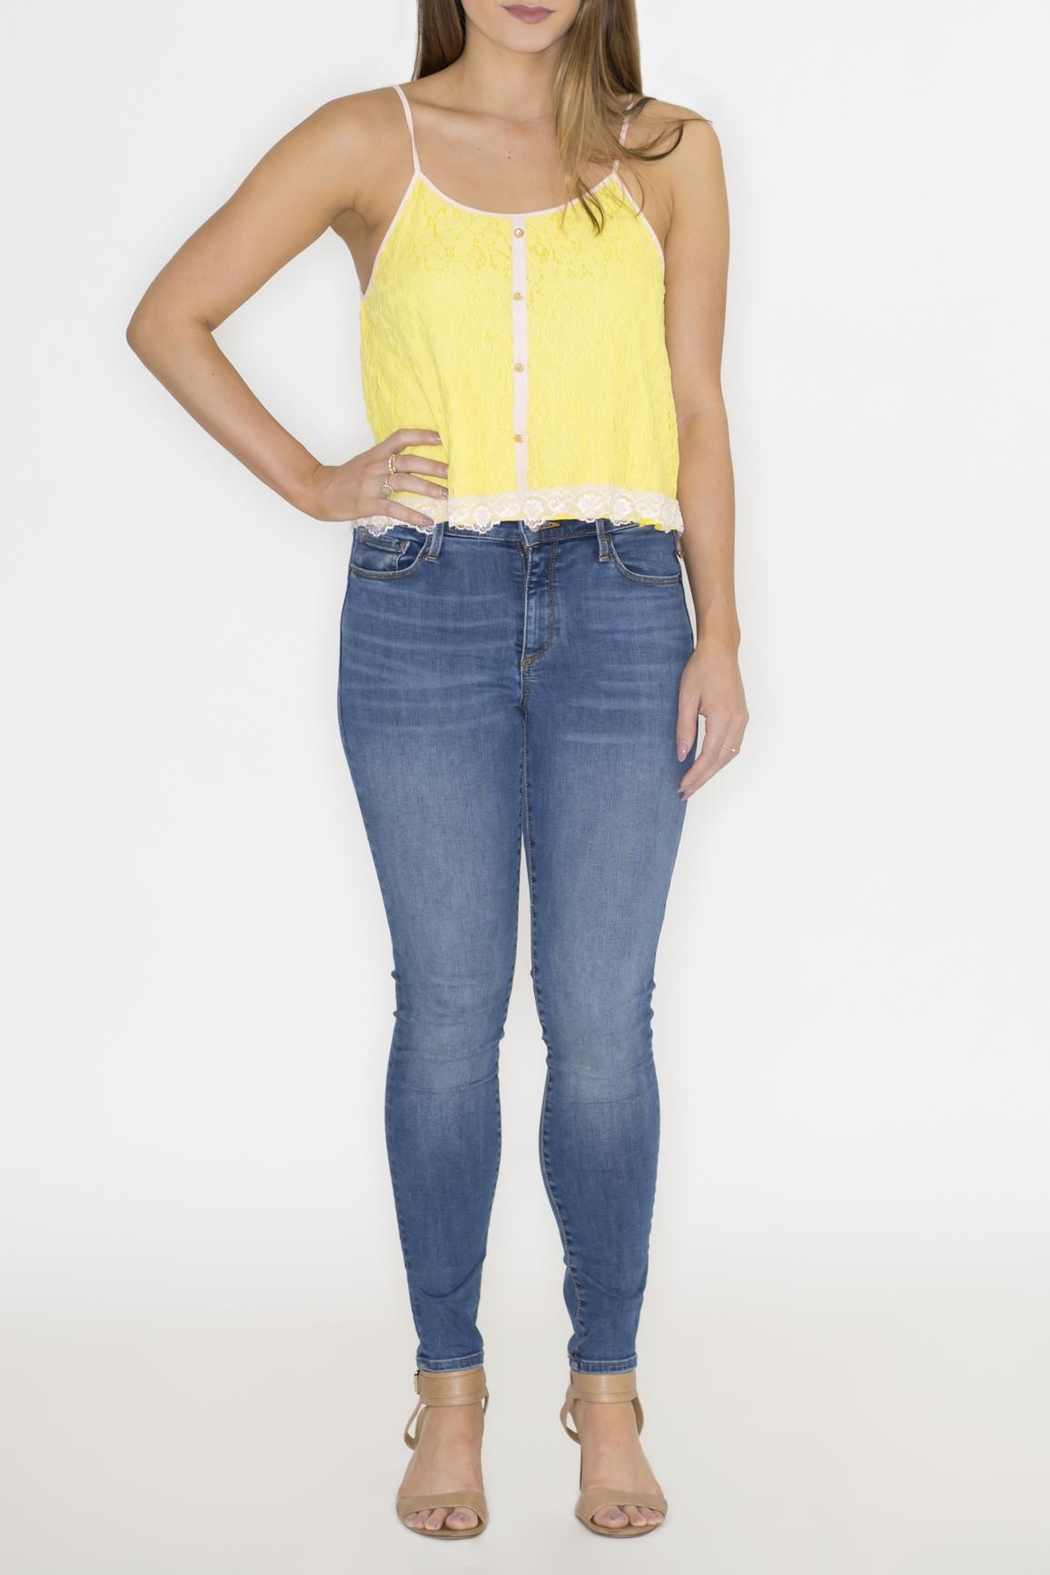 Machine Jeans Yellow Lace Overlay Top - Back Cropped Image